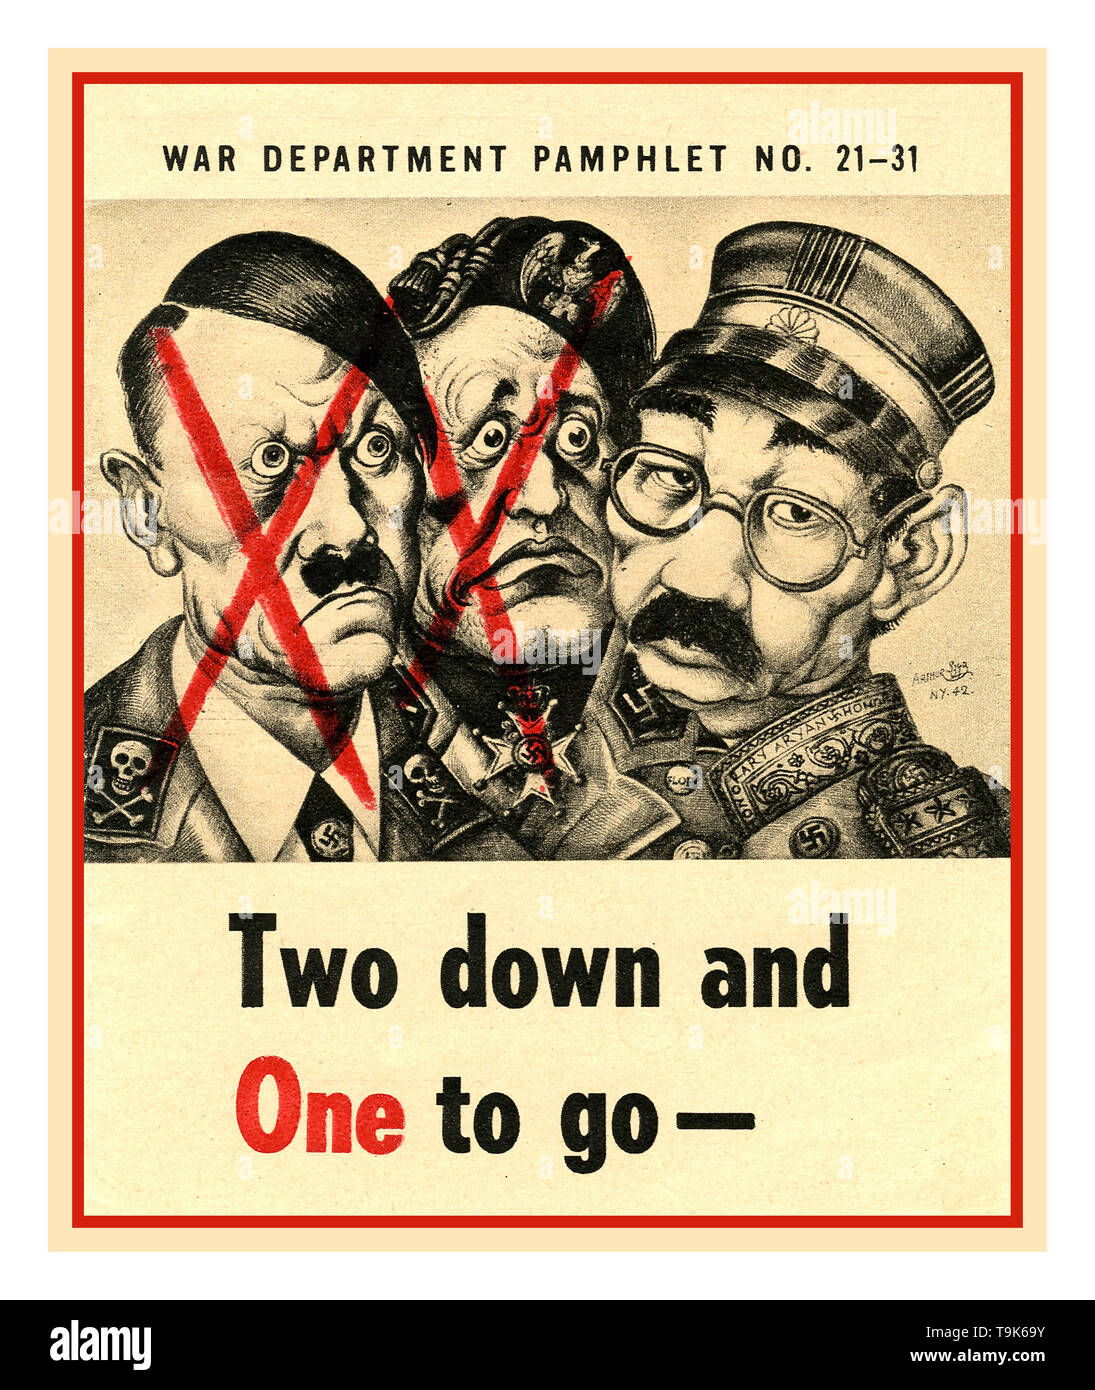 """Vintage WW2 propaganda poster pamphlet  """"Two down and One to go..""""   Two Axis Leaders dead with one more to go. War Department Pamphlet No. 21-31 featuring an illustration of Adolf Hitler, Benito Mussolini and Emperor Hirohito. Published for the USA War Department on 28 April 1945, - Stock Image"""